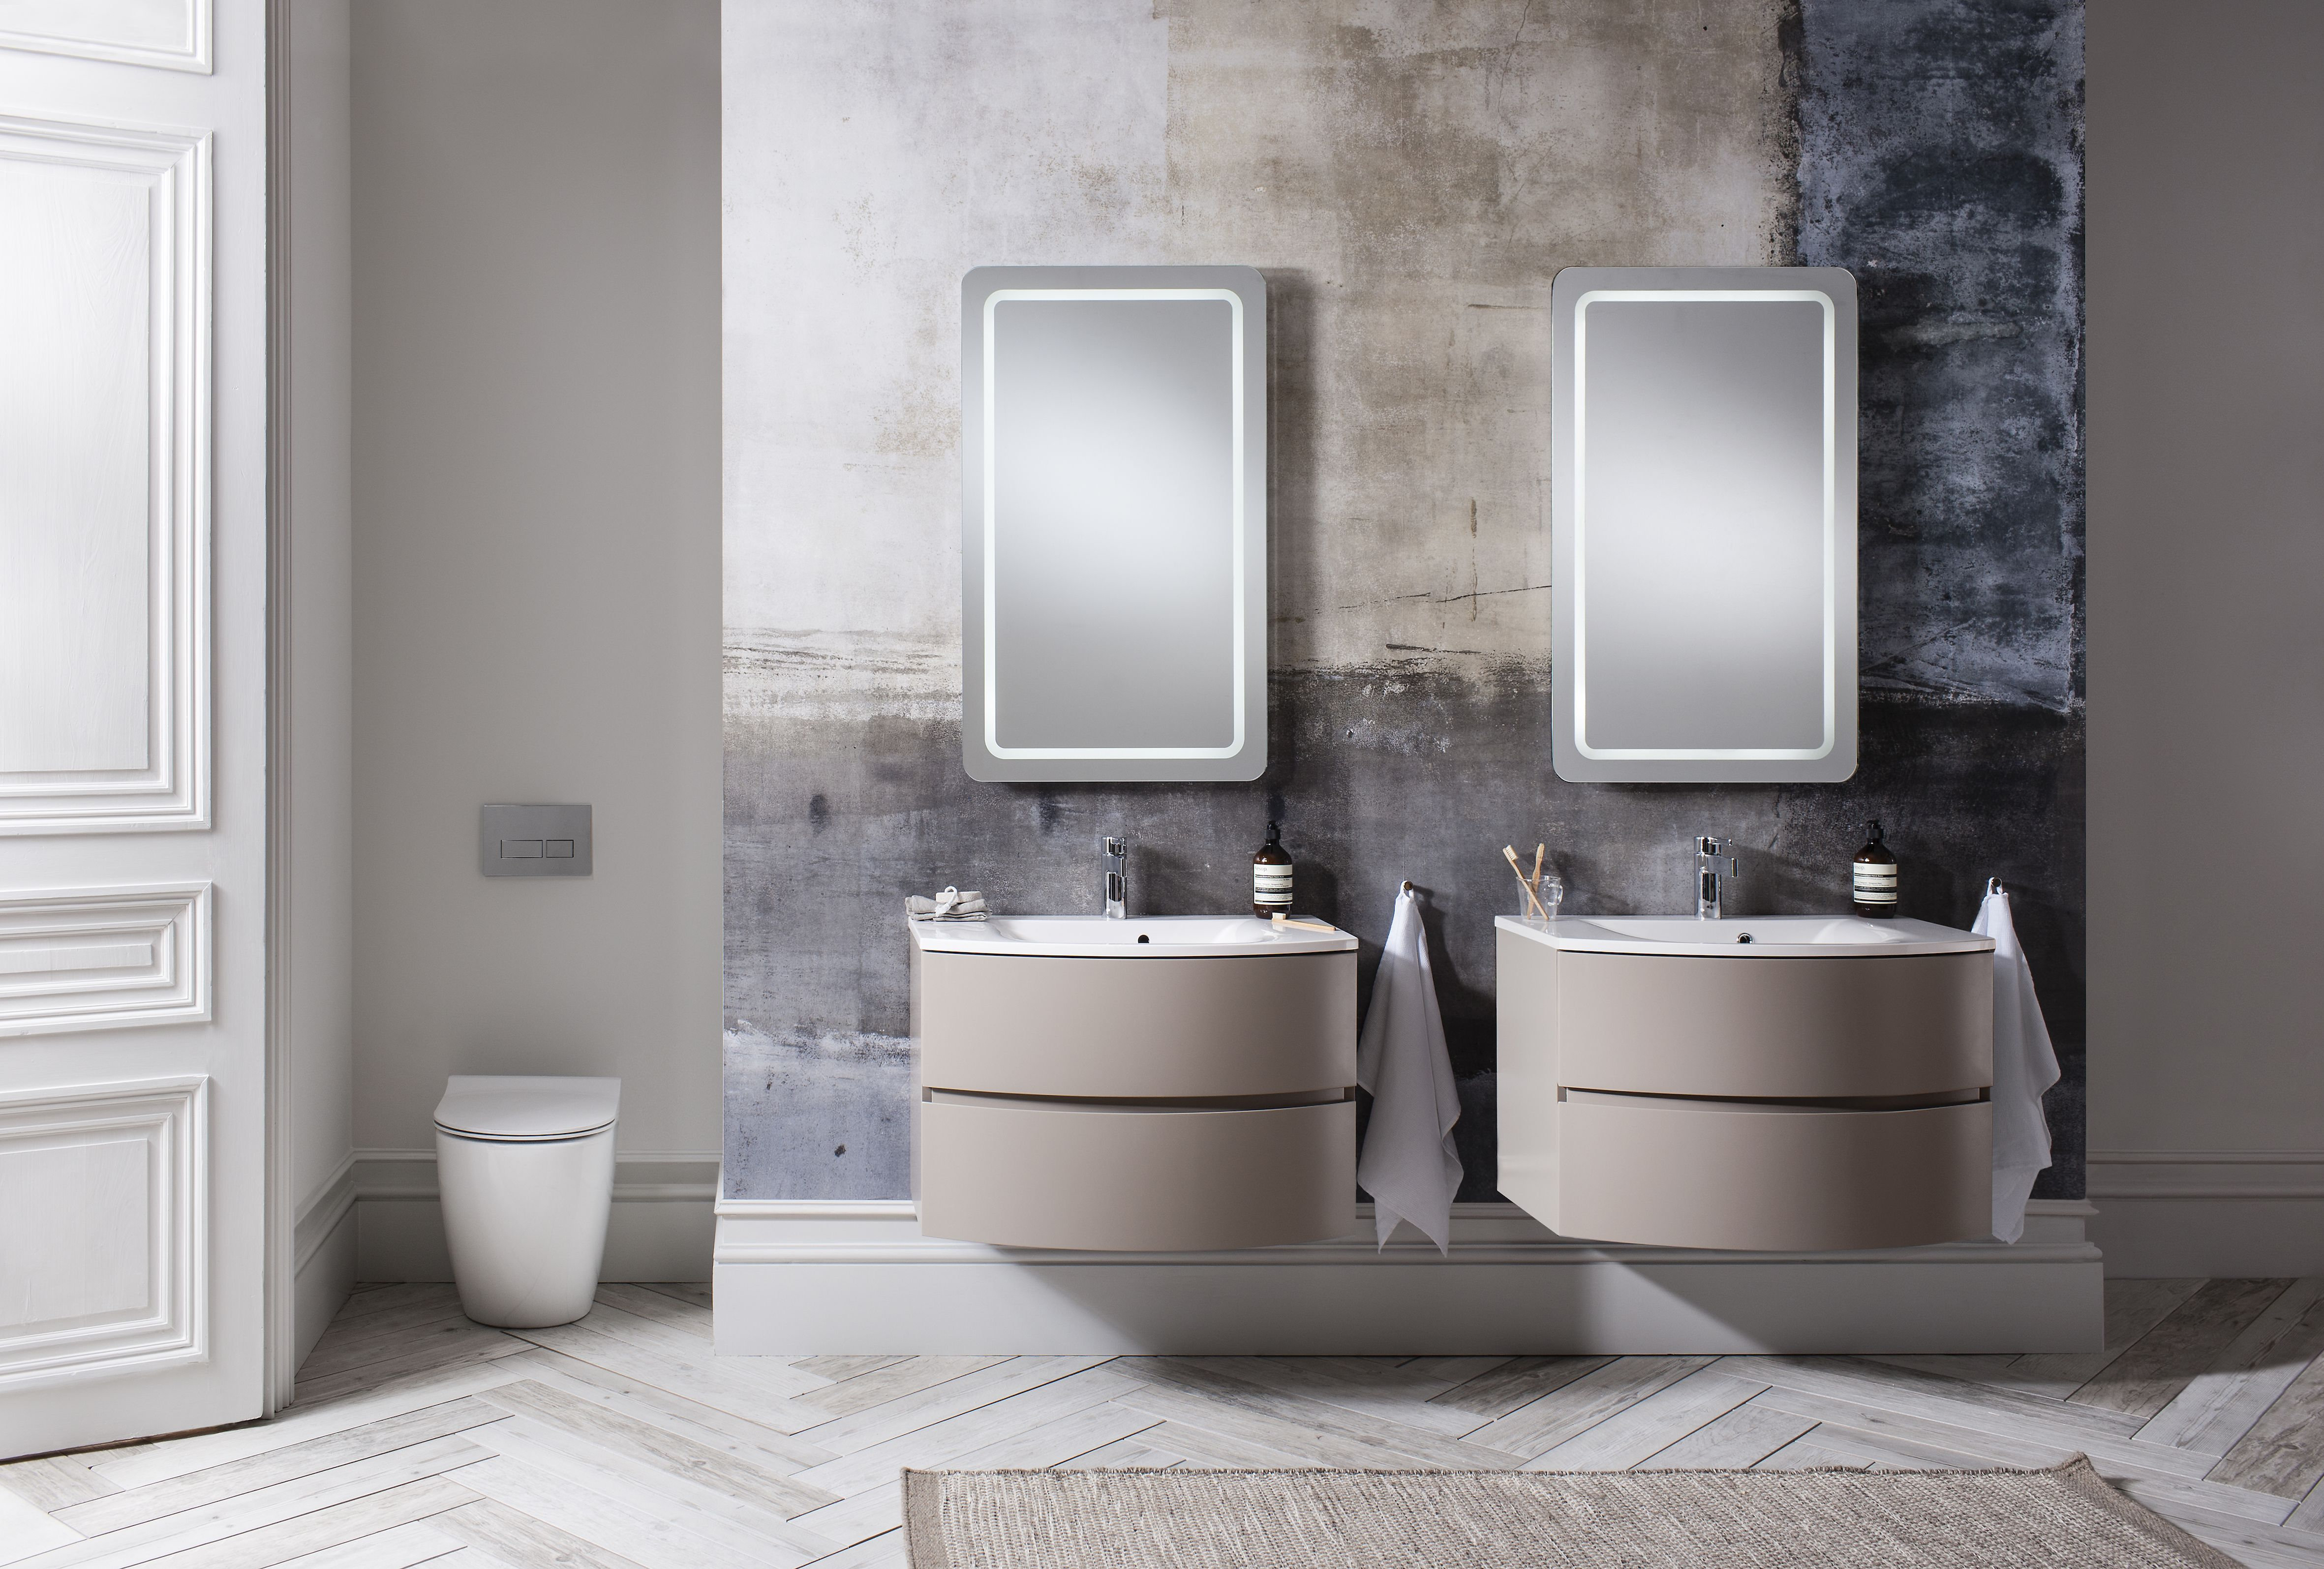 The mochatoned range will add a touch of elegance to bathrooms